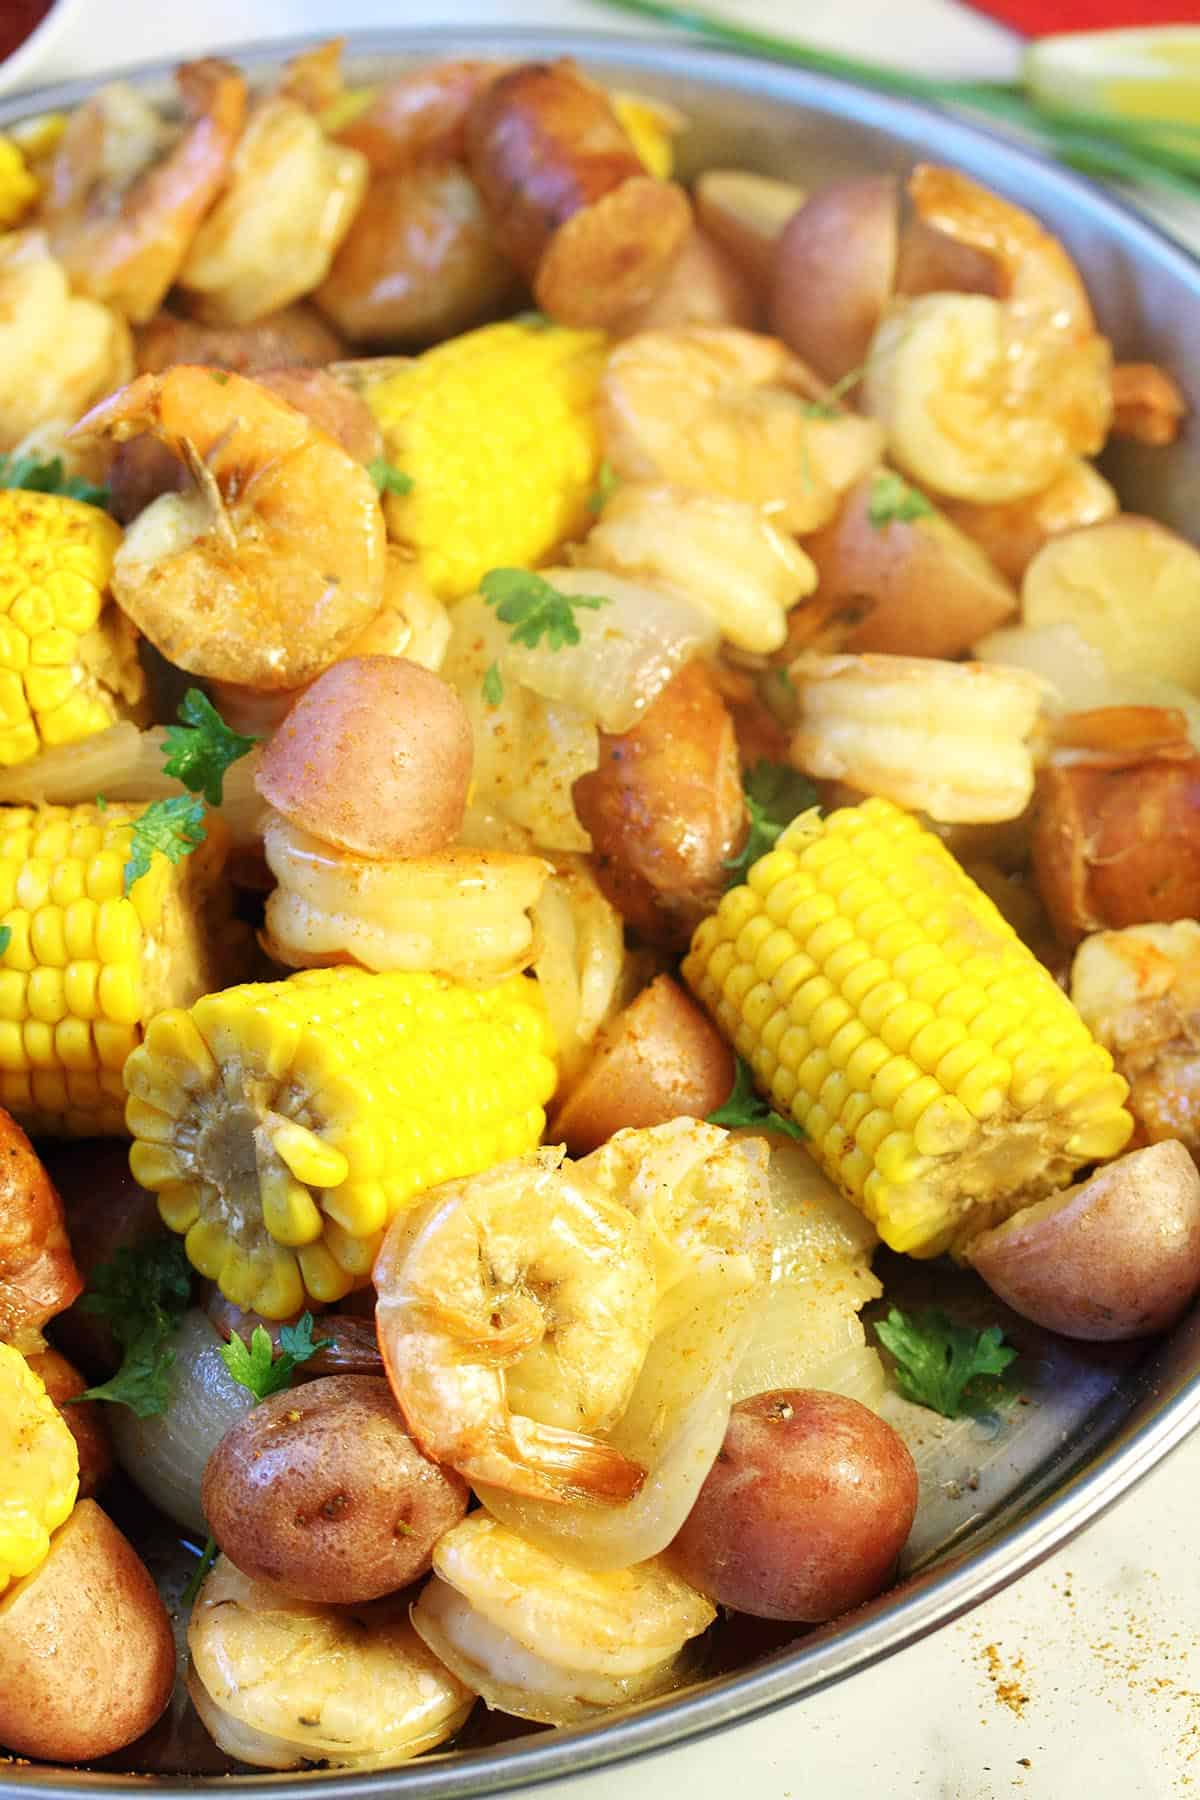 Closeup of boil in round pan showing corn shrimp and potatoes.